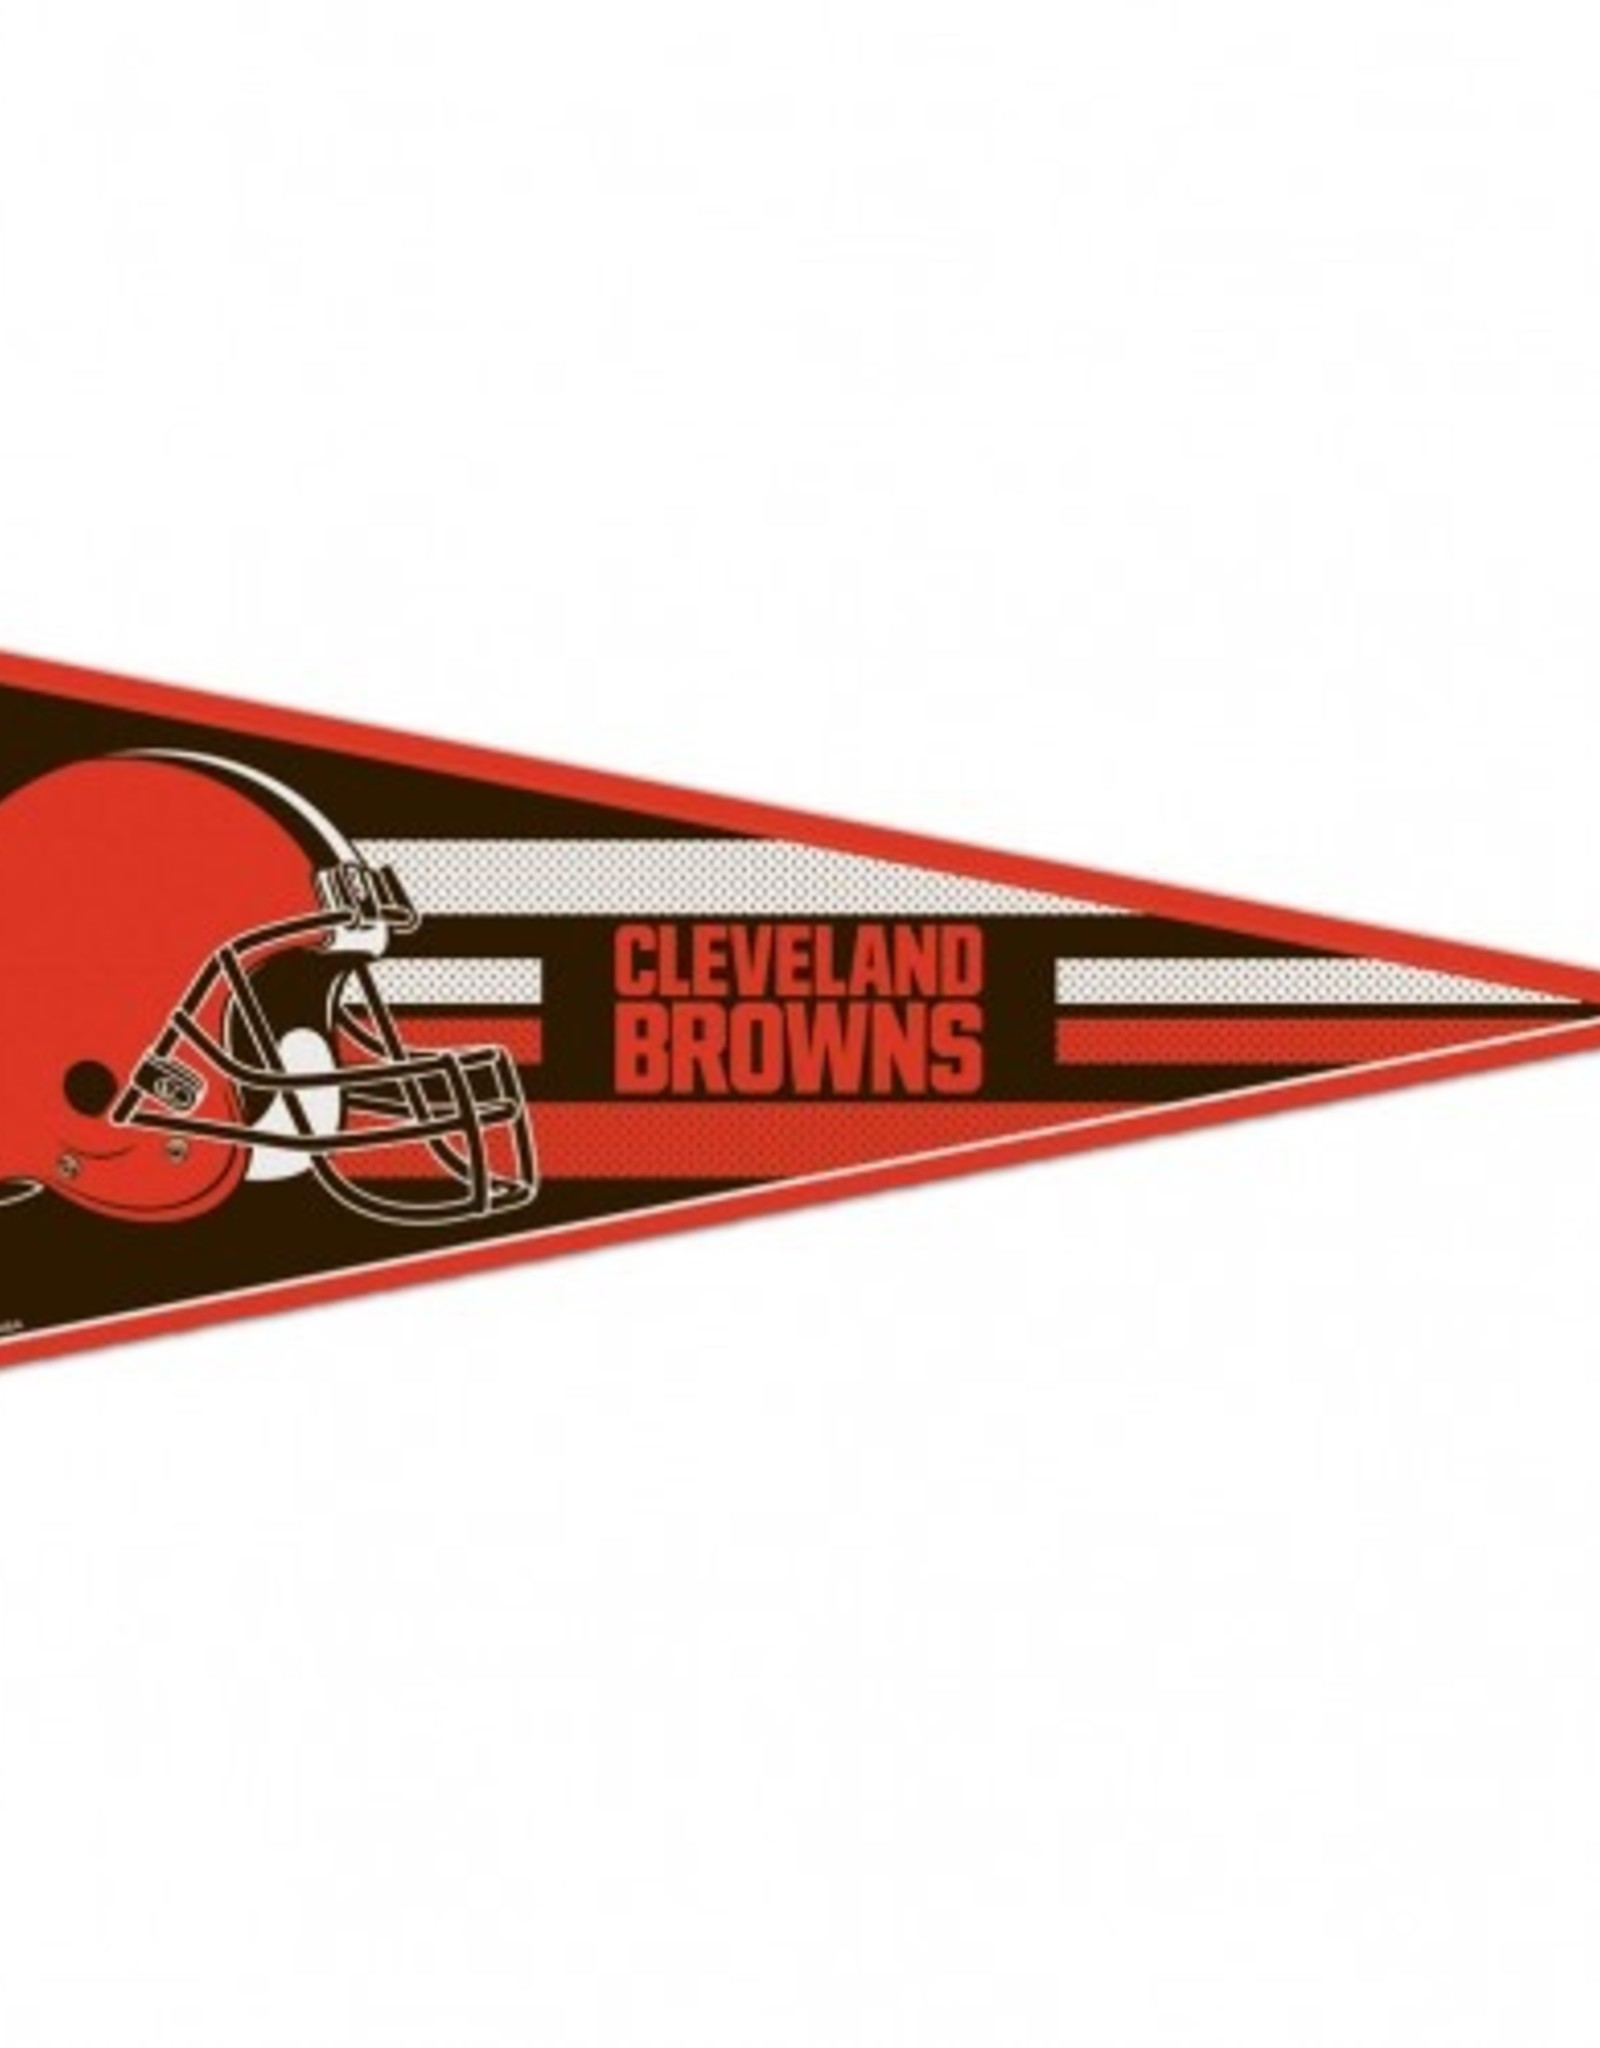 "Cleveland Browns 12""x30"" Classic Pennant"